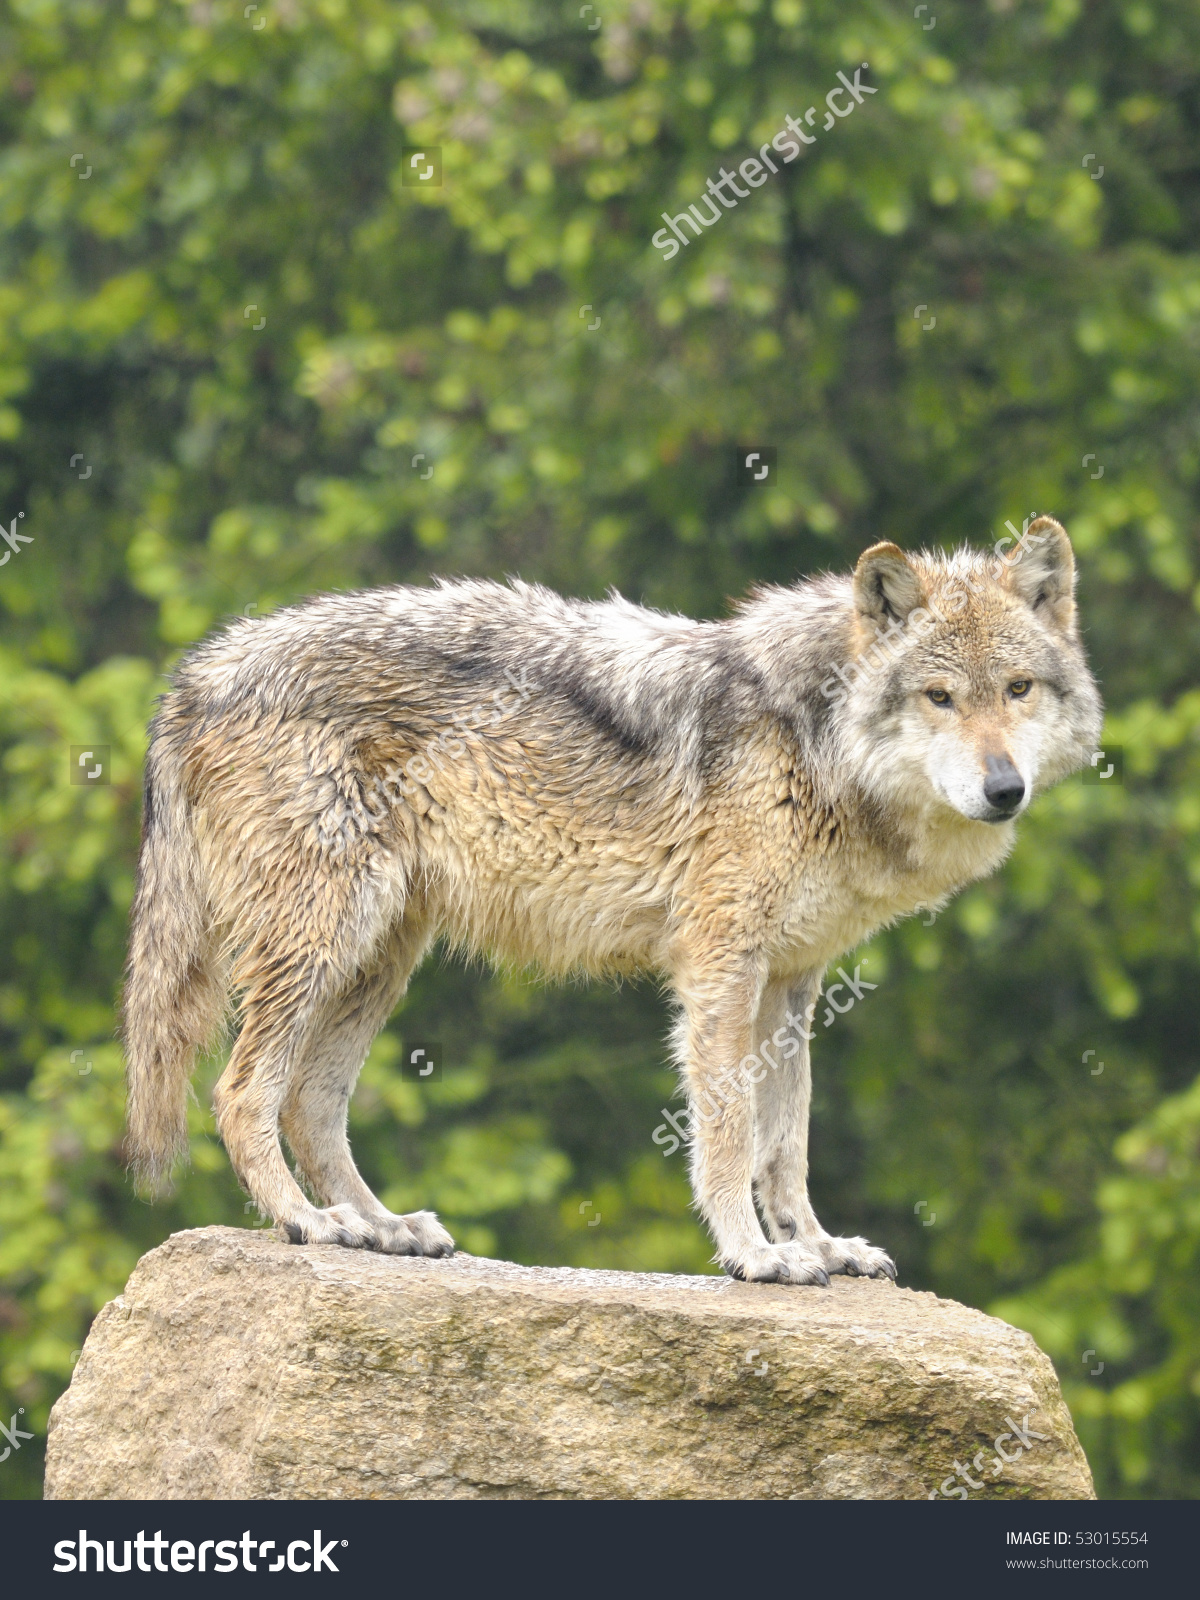 Mexican Gray Wolf Canis Lupus Baileyi Stock Photo 53015554.